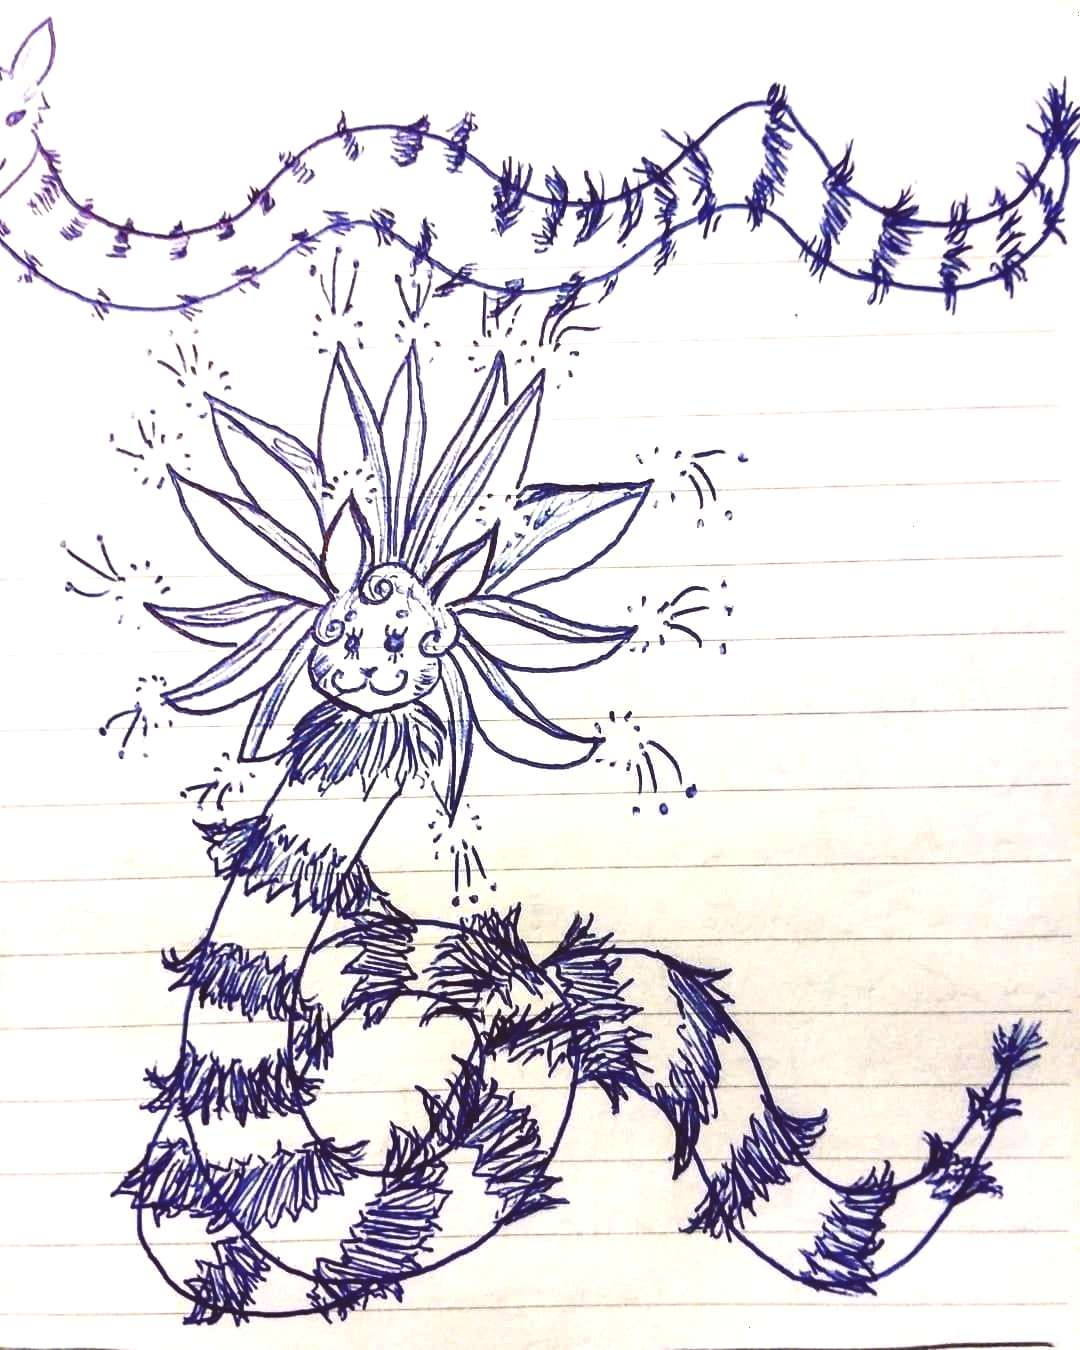 guys like doodles? Ive been doing a lot of them at my recent job. Here's one I found of my renditio